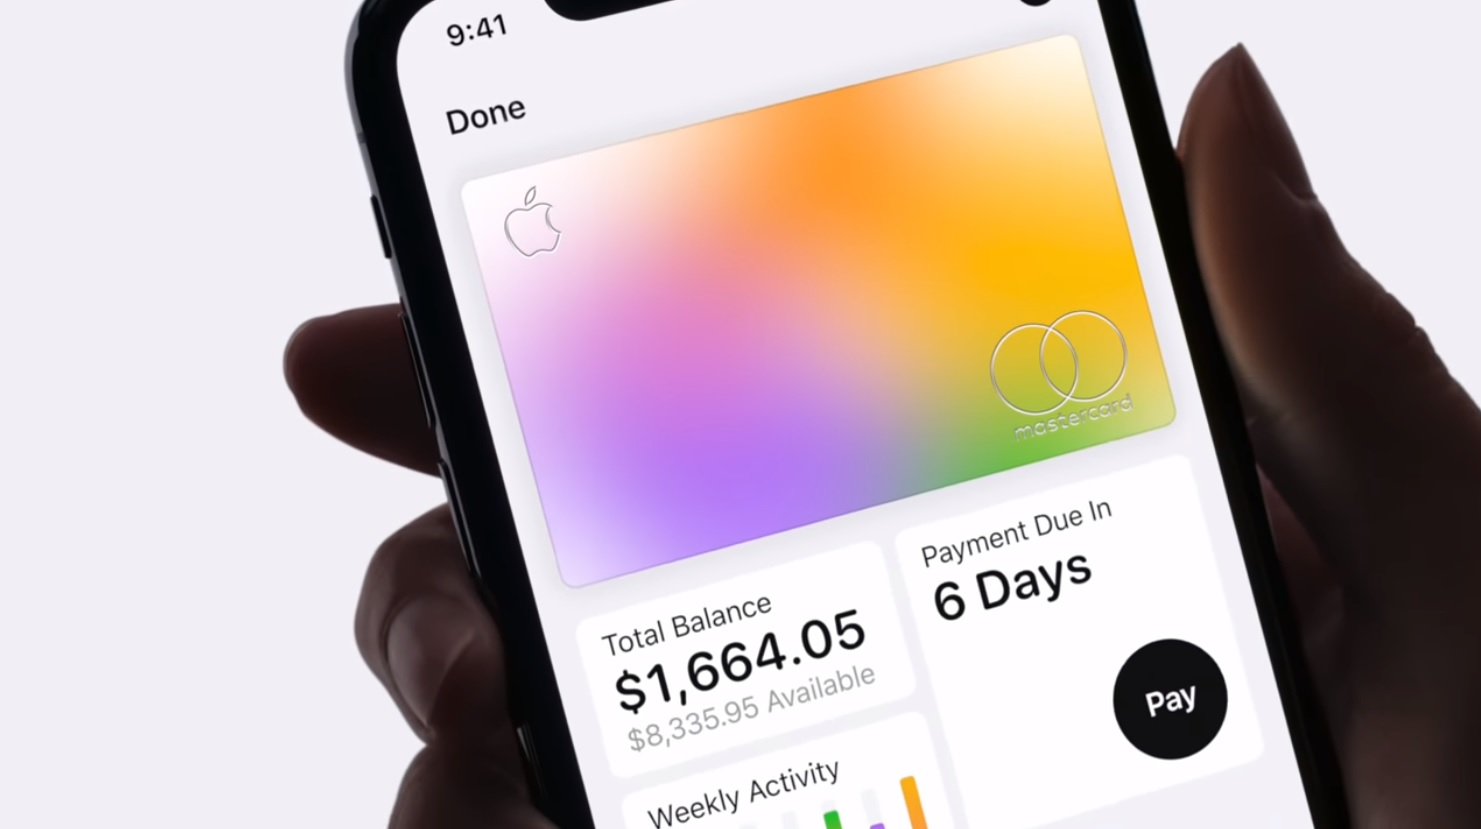 Apple will offer its own credit card